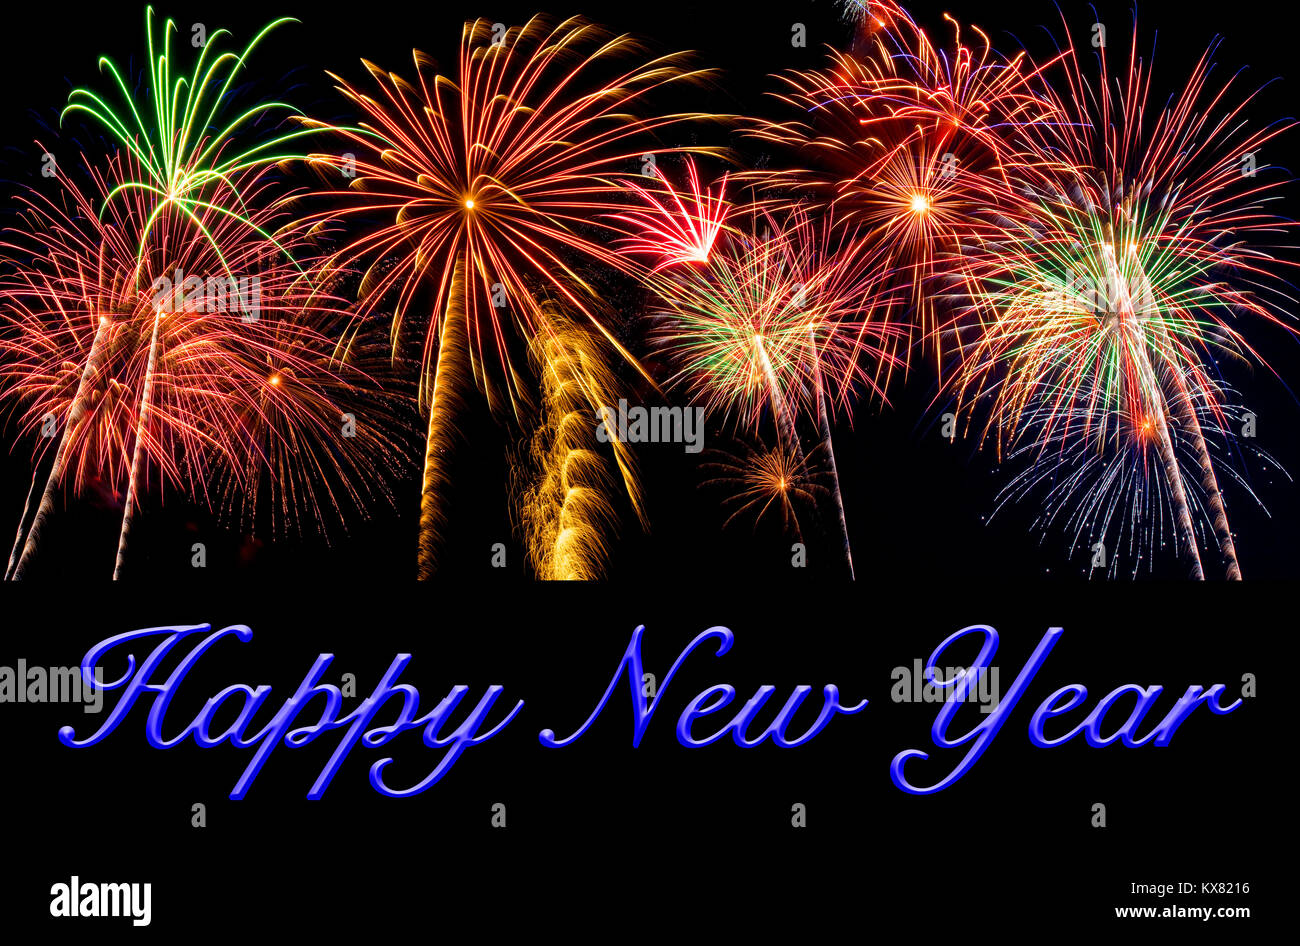 Happy New Year on a beautiful background of fireworks - Stock Image